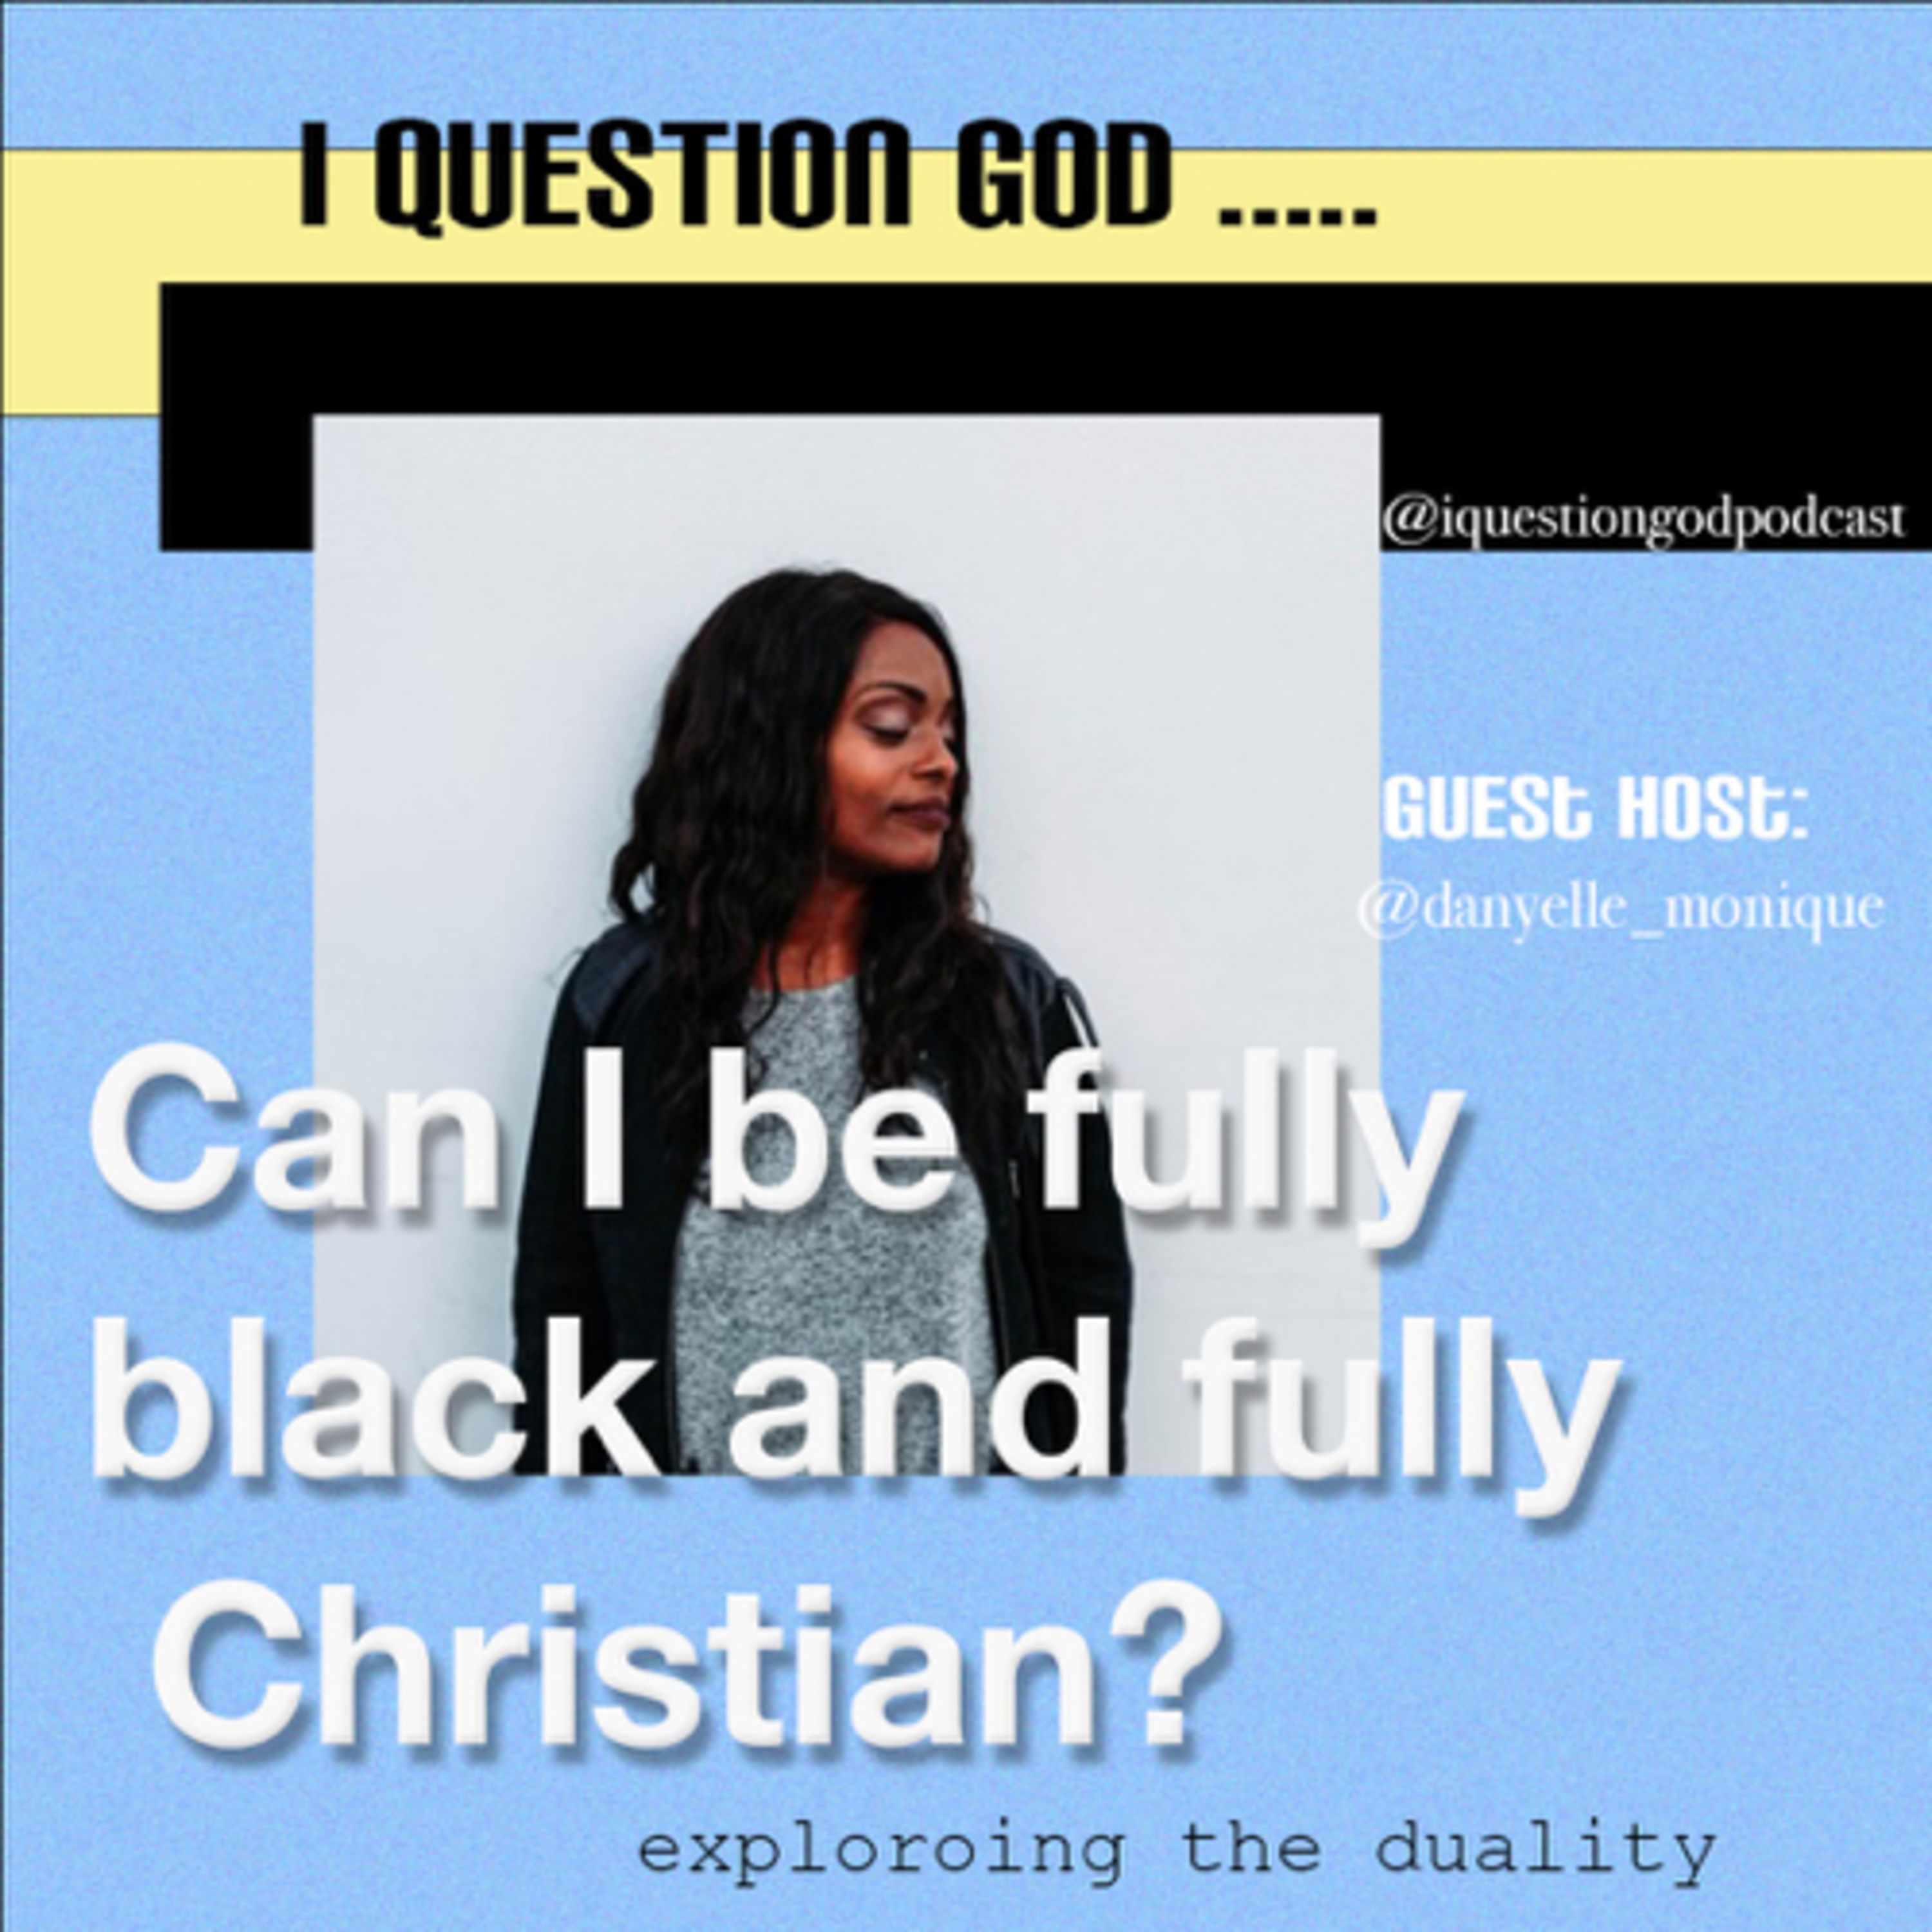 Can I be fully black and fully Christian? Part 1